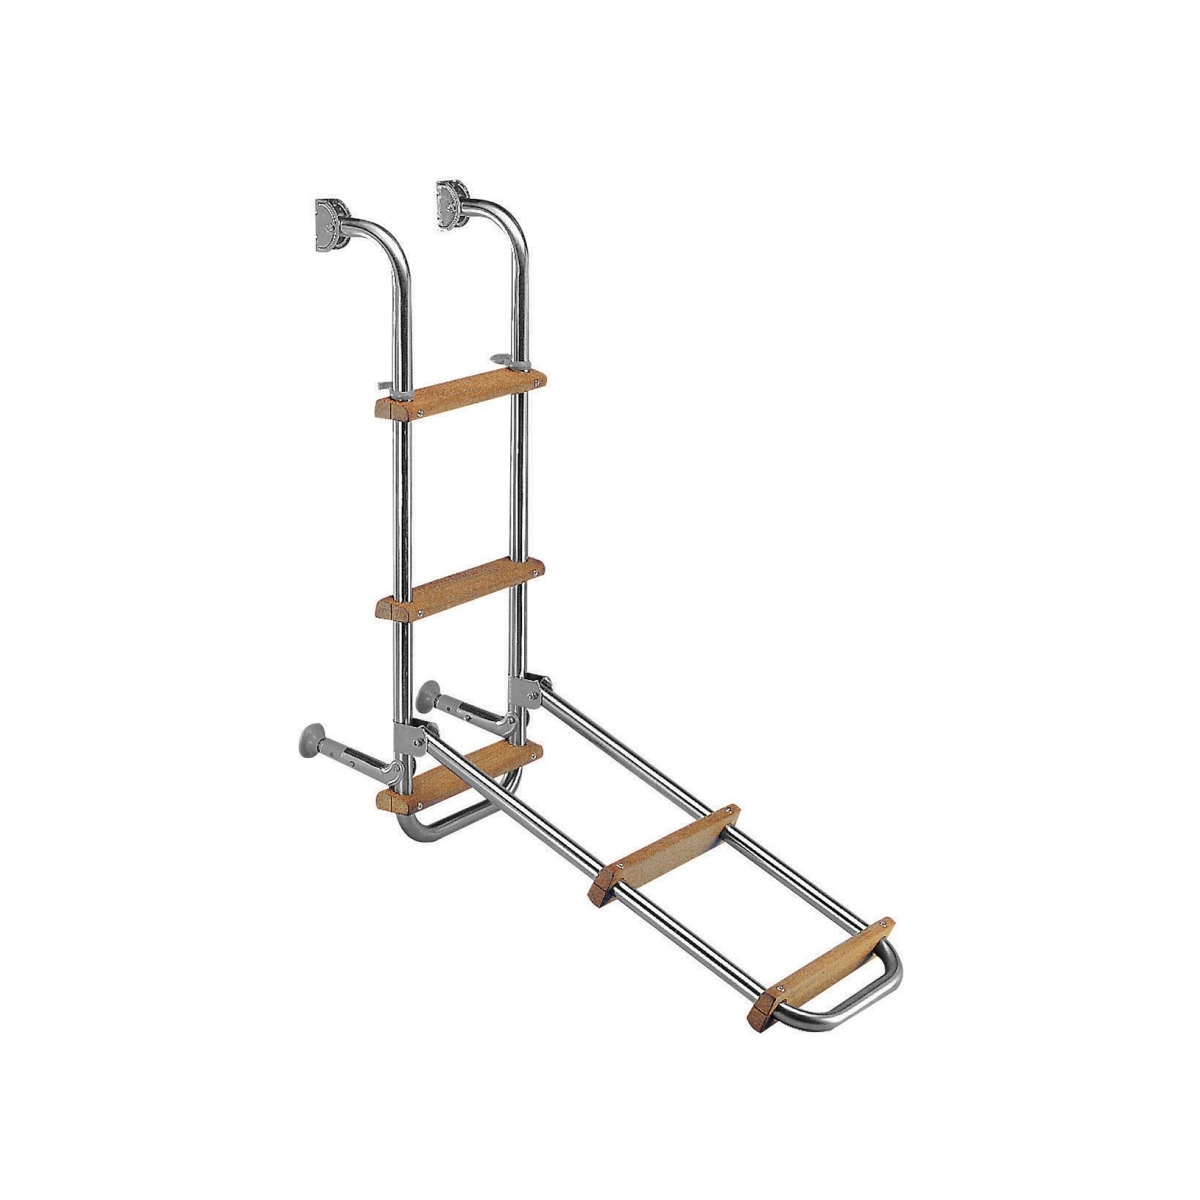 FOLDING LADDER FOR SMALL CRAFT